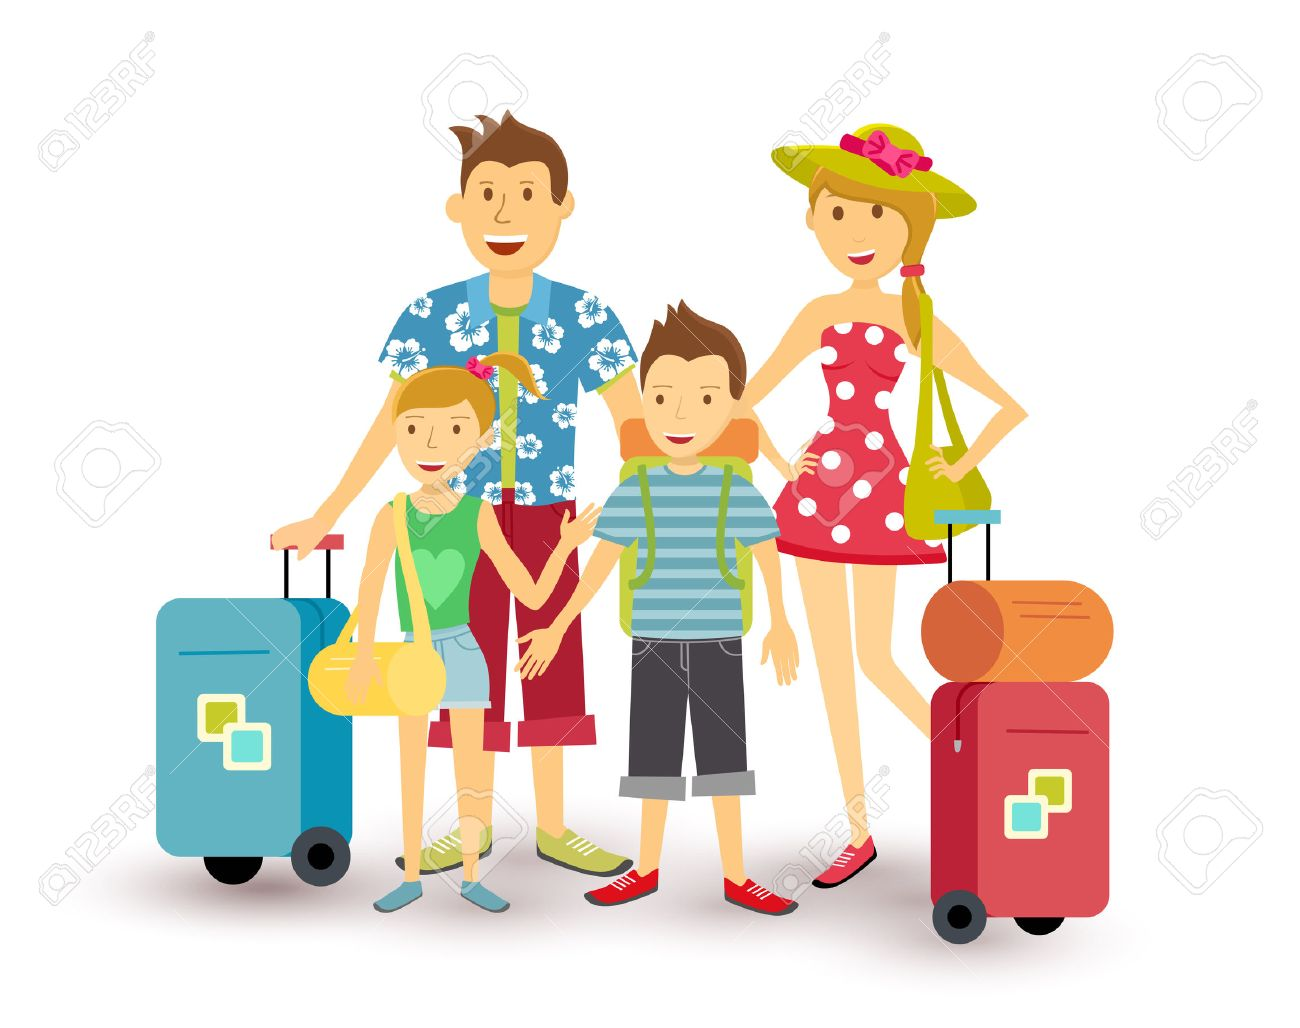 hight resolution of happy family of parents and children travel summer vacation with suitcase people group illustration in